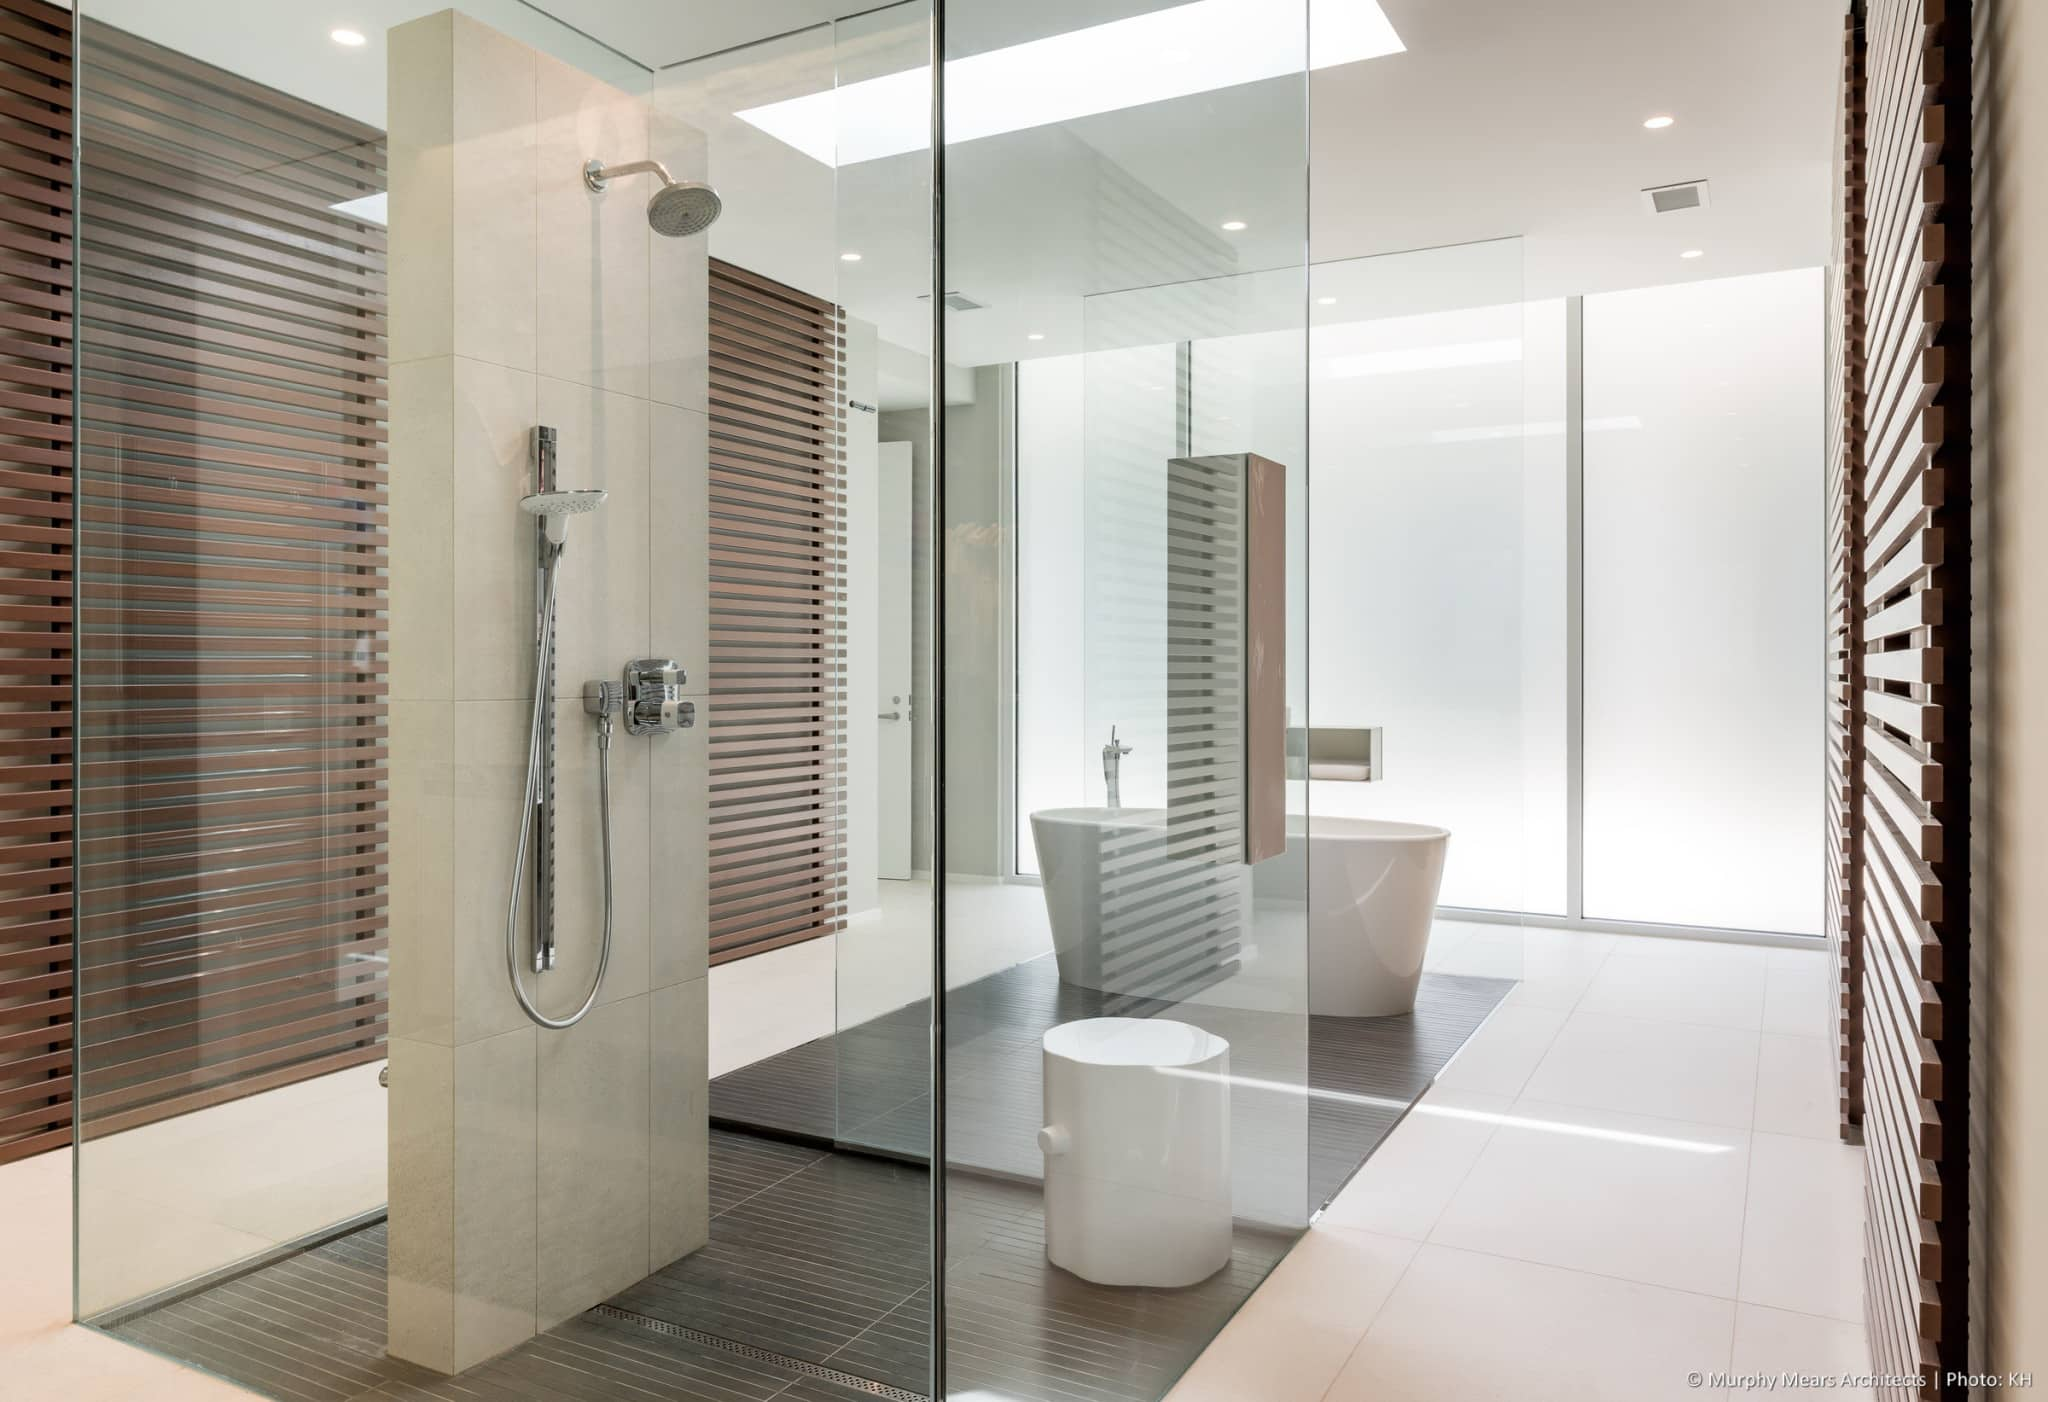 Centralized shower and tub in the master bath, with slatted rolling panels framing the cross-axis closet entries.